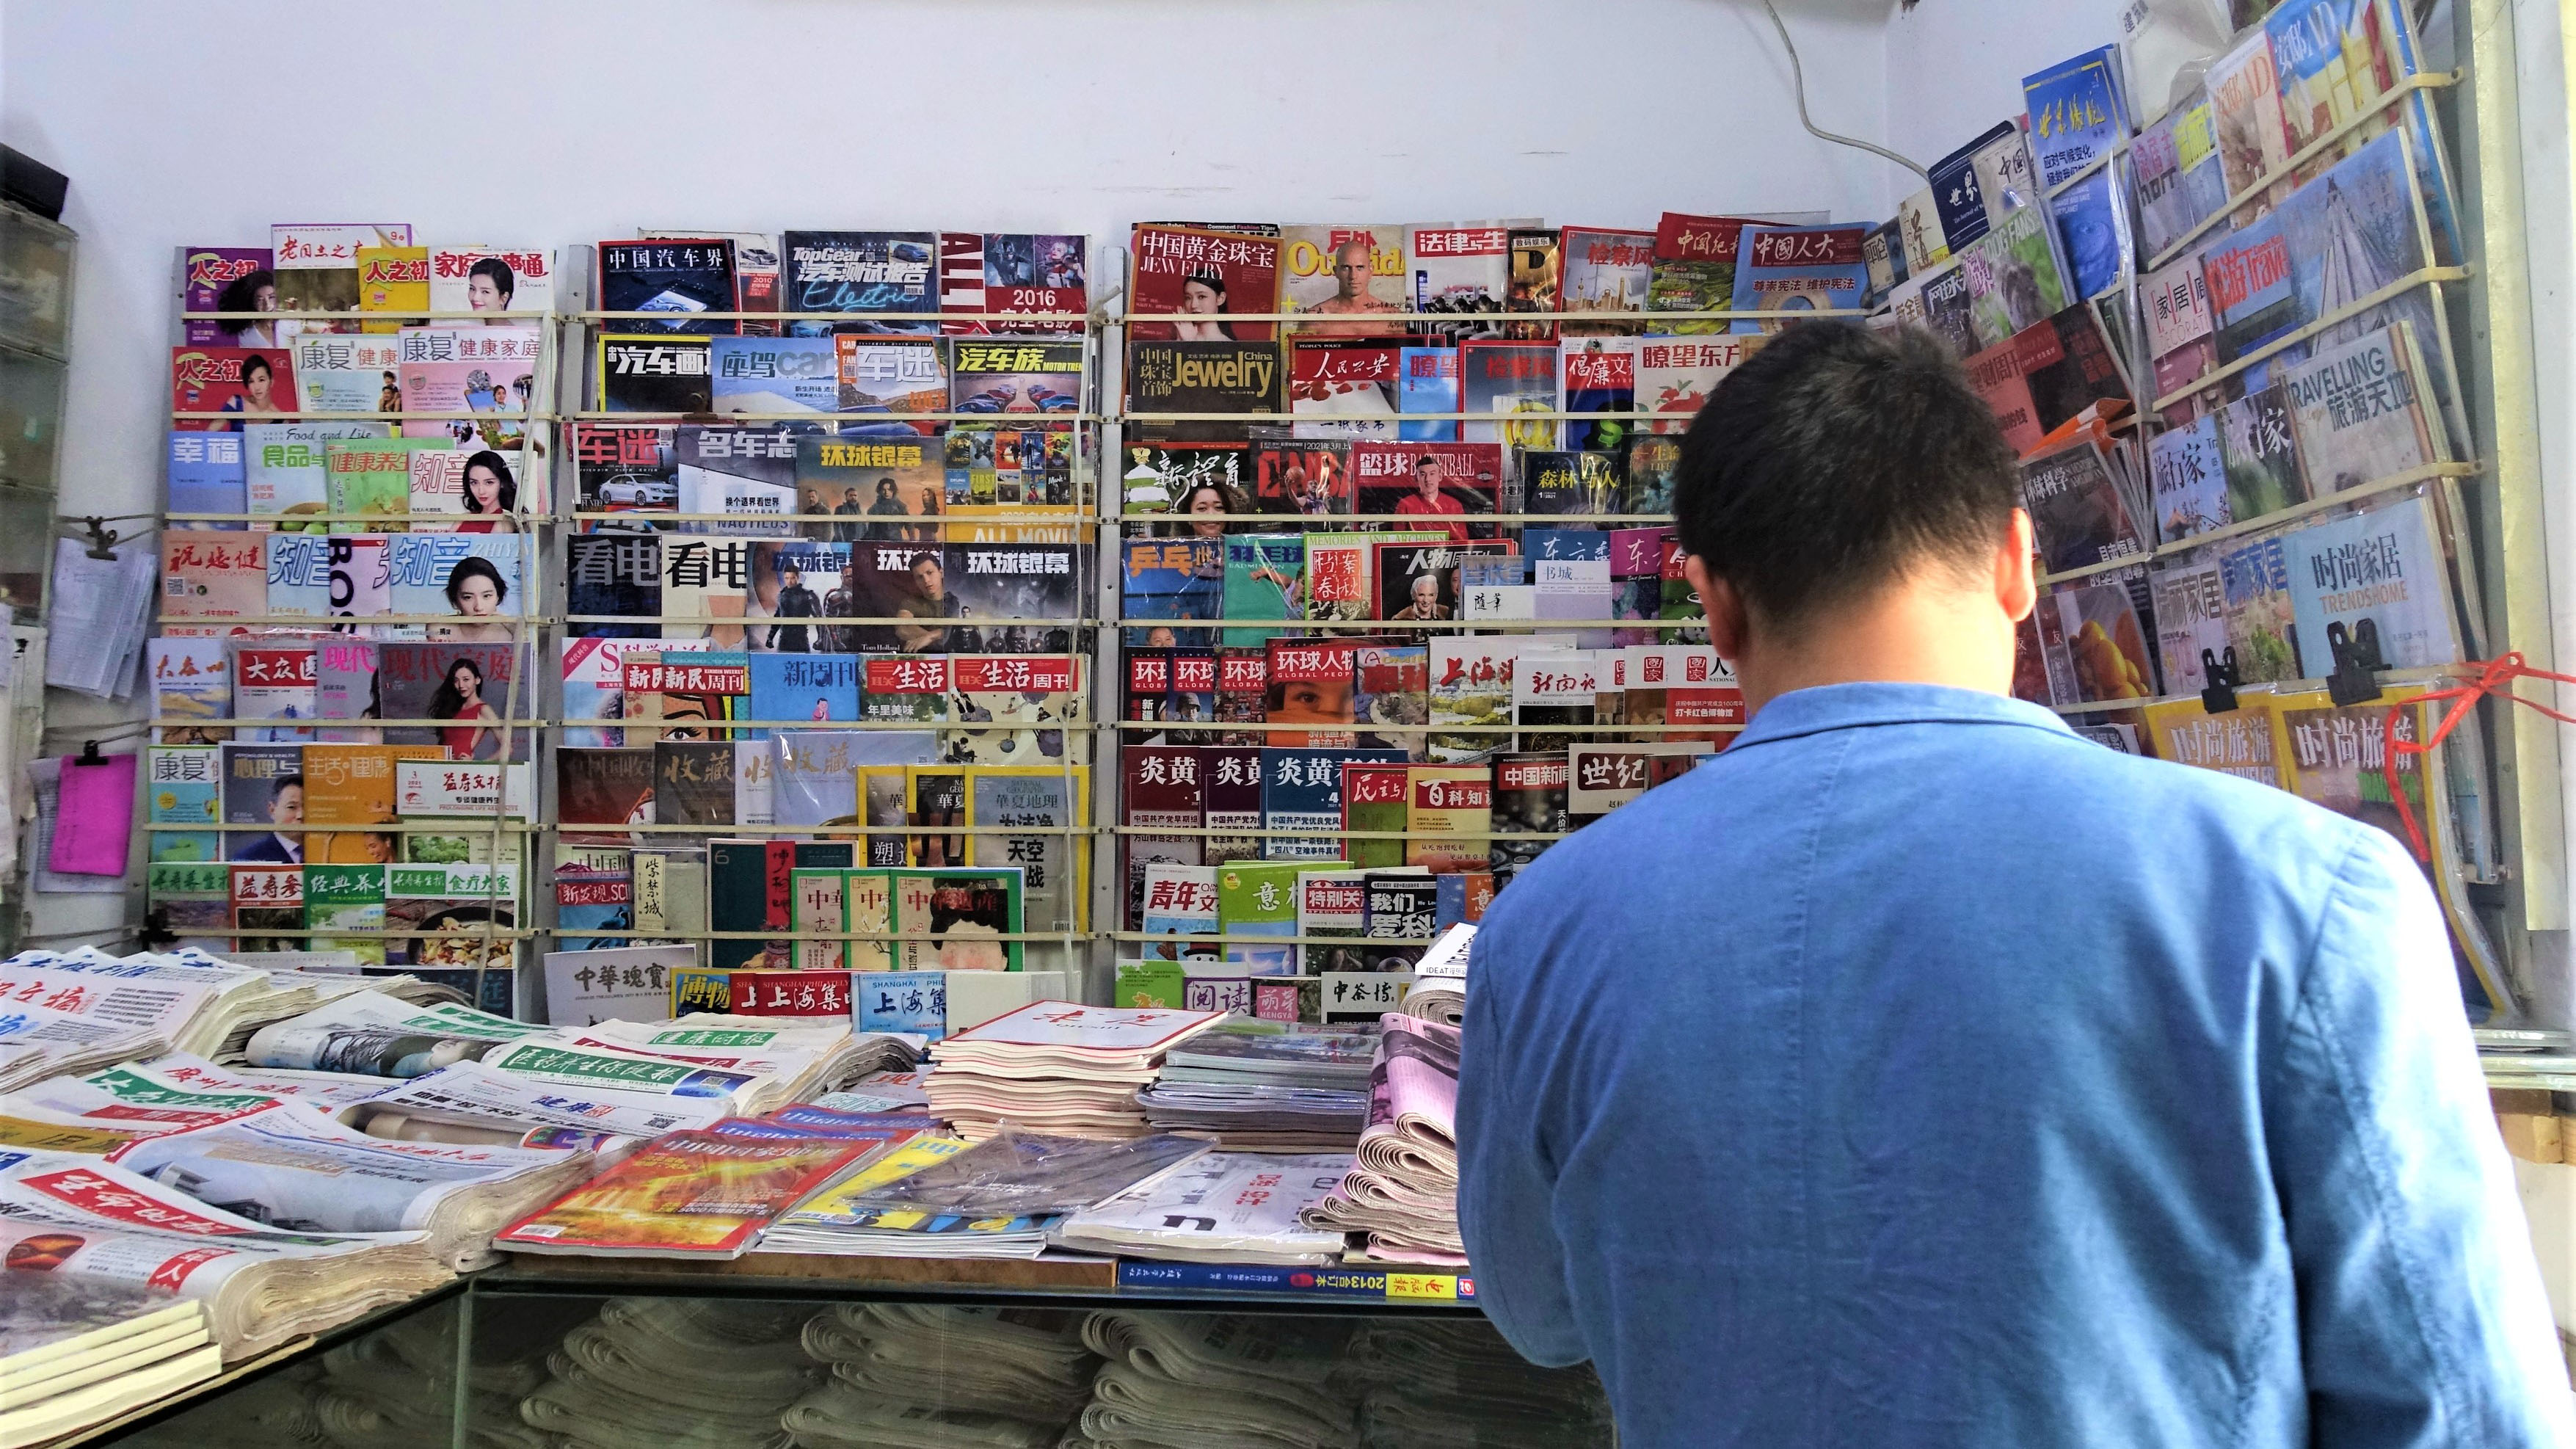 Shanghai's newsstands are disappearing. Why?